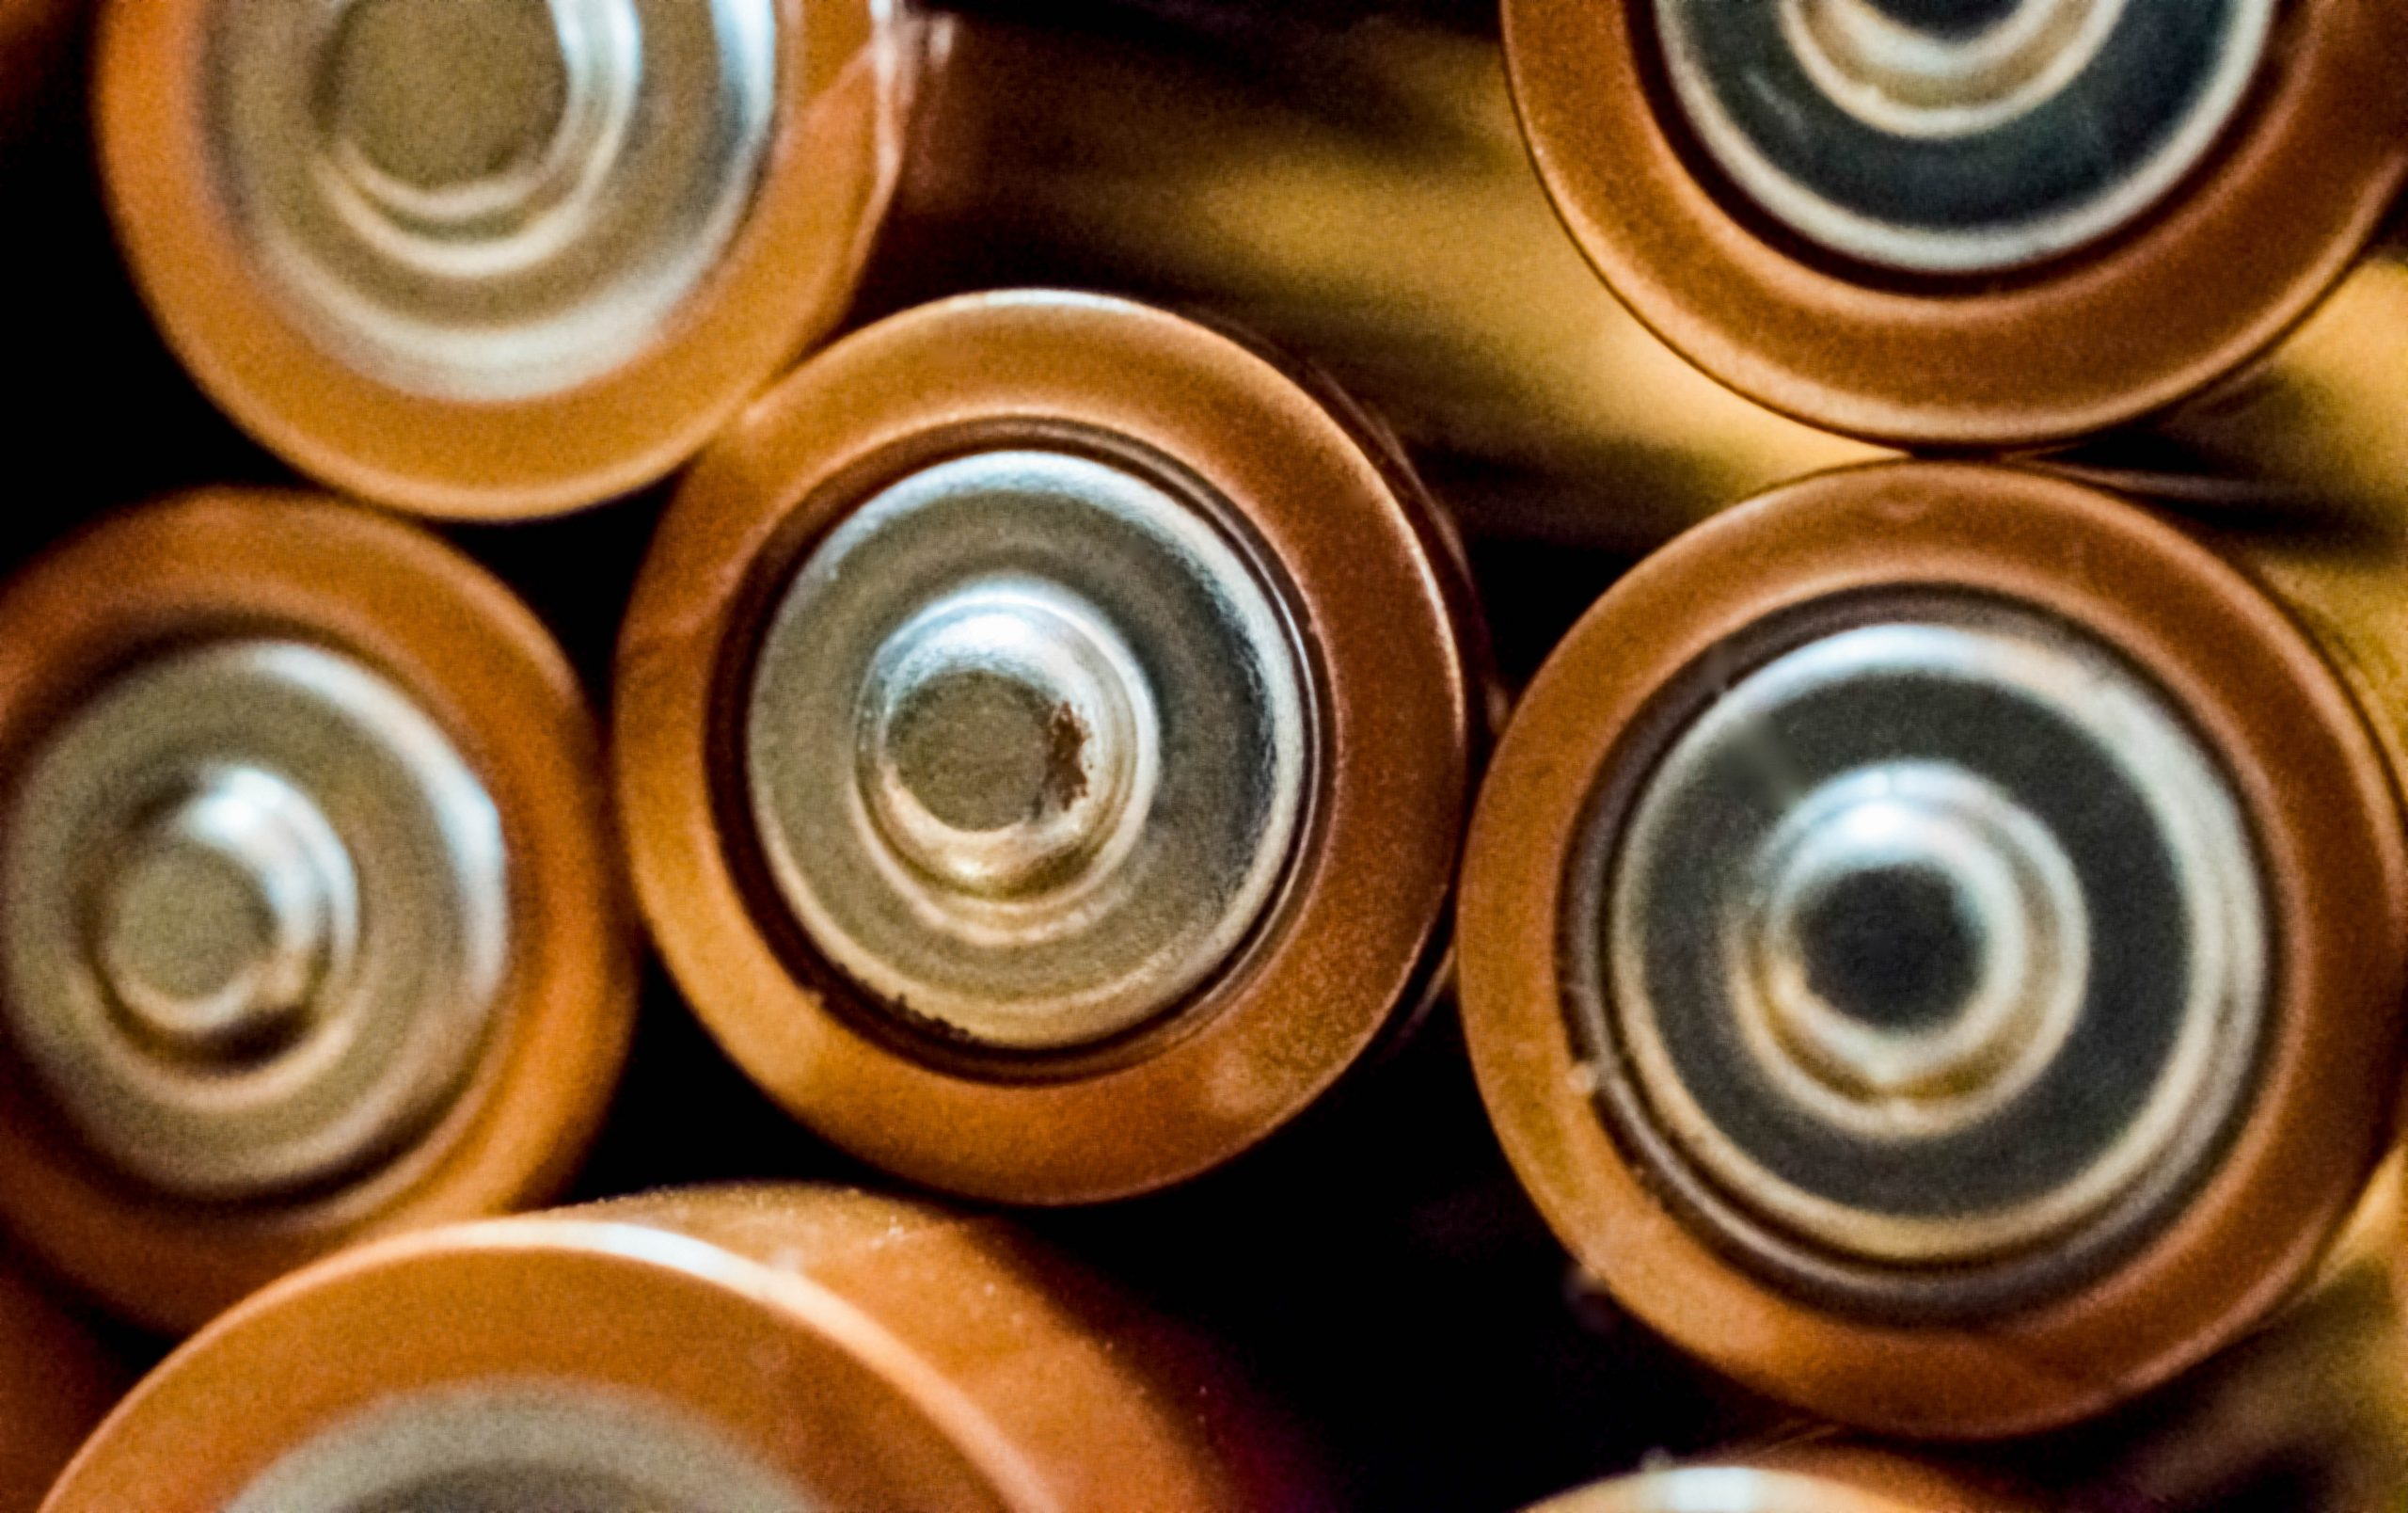 close-up-photo-of-batteries-698485